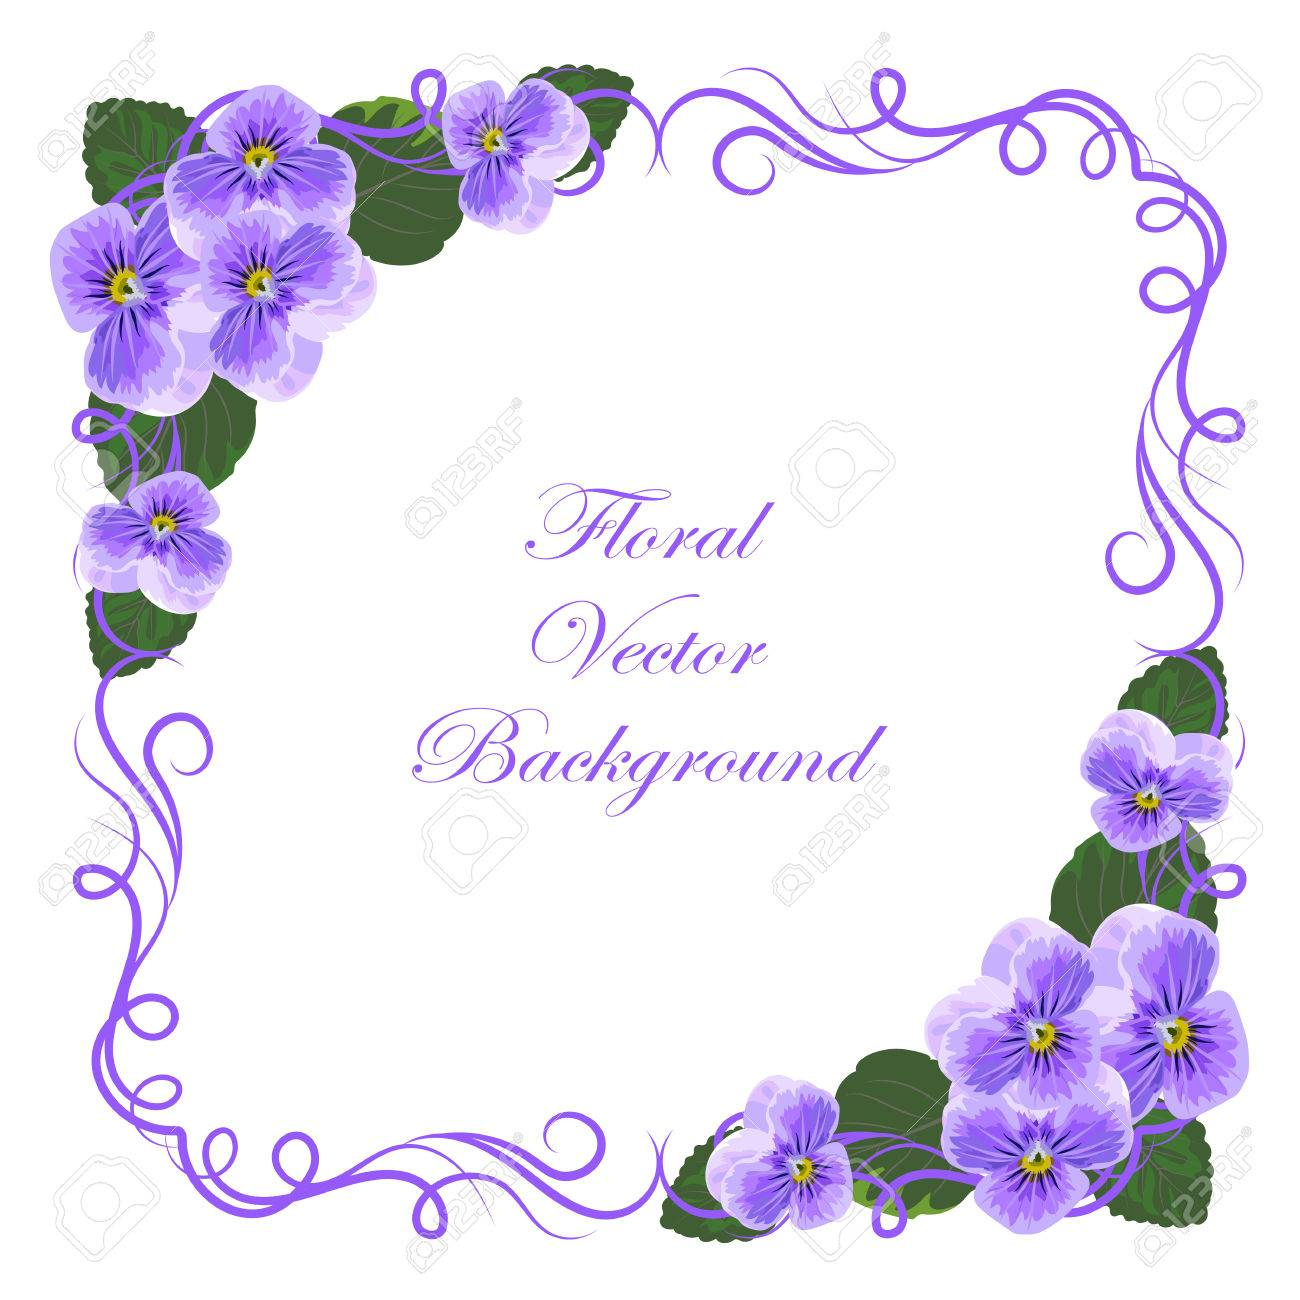 Floral Vector Background With Vintage Frame And Violet Flowers Royalty Free Cliparts Vectors And Stock Illustration Image 53388376